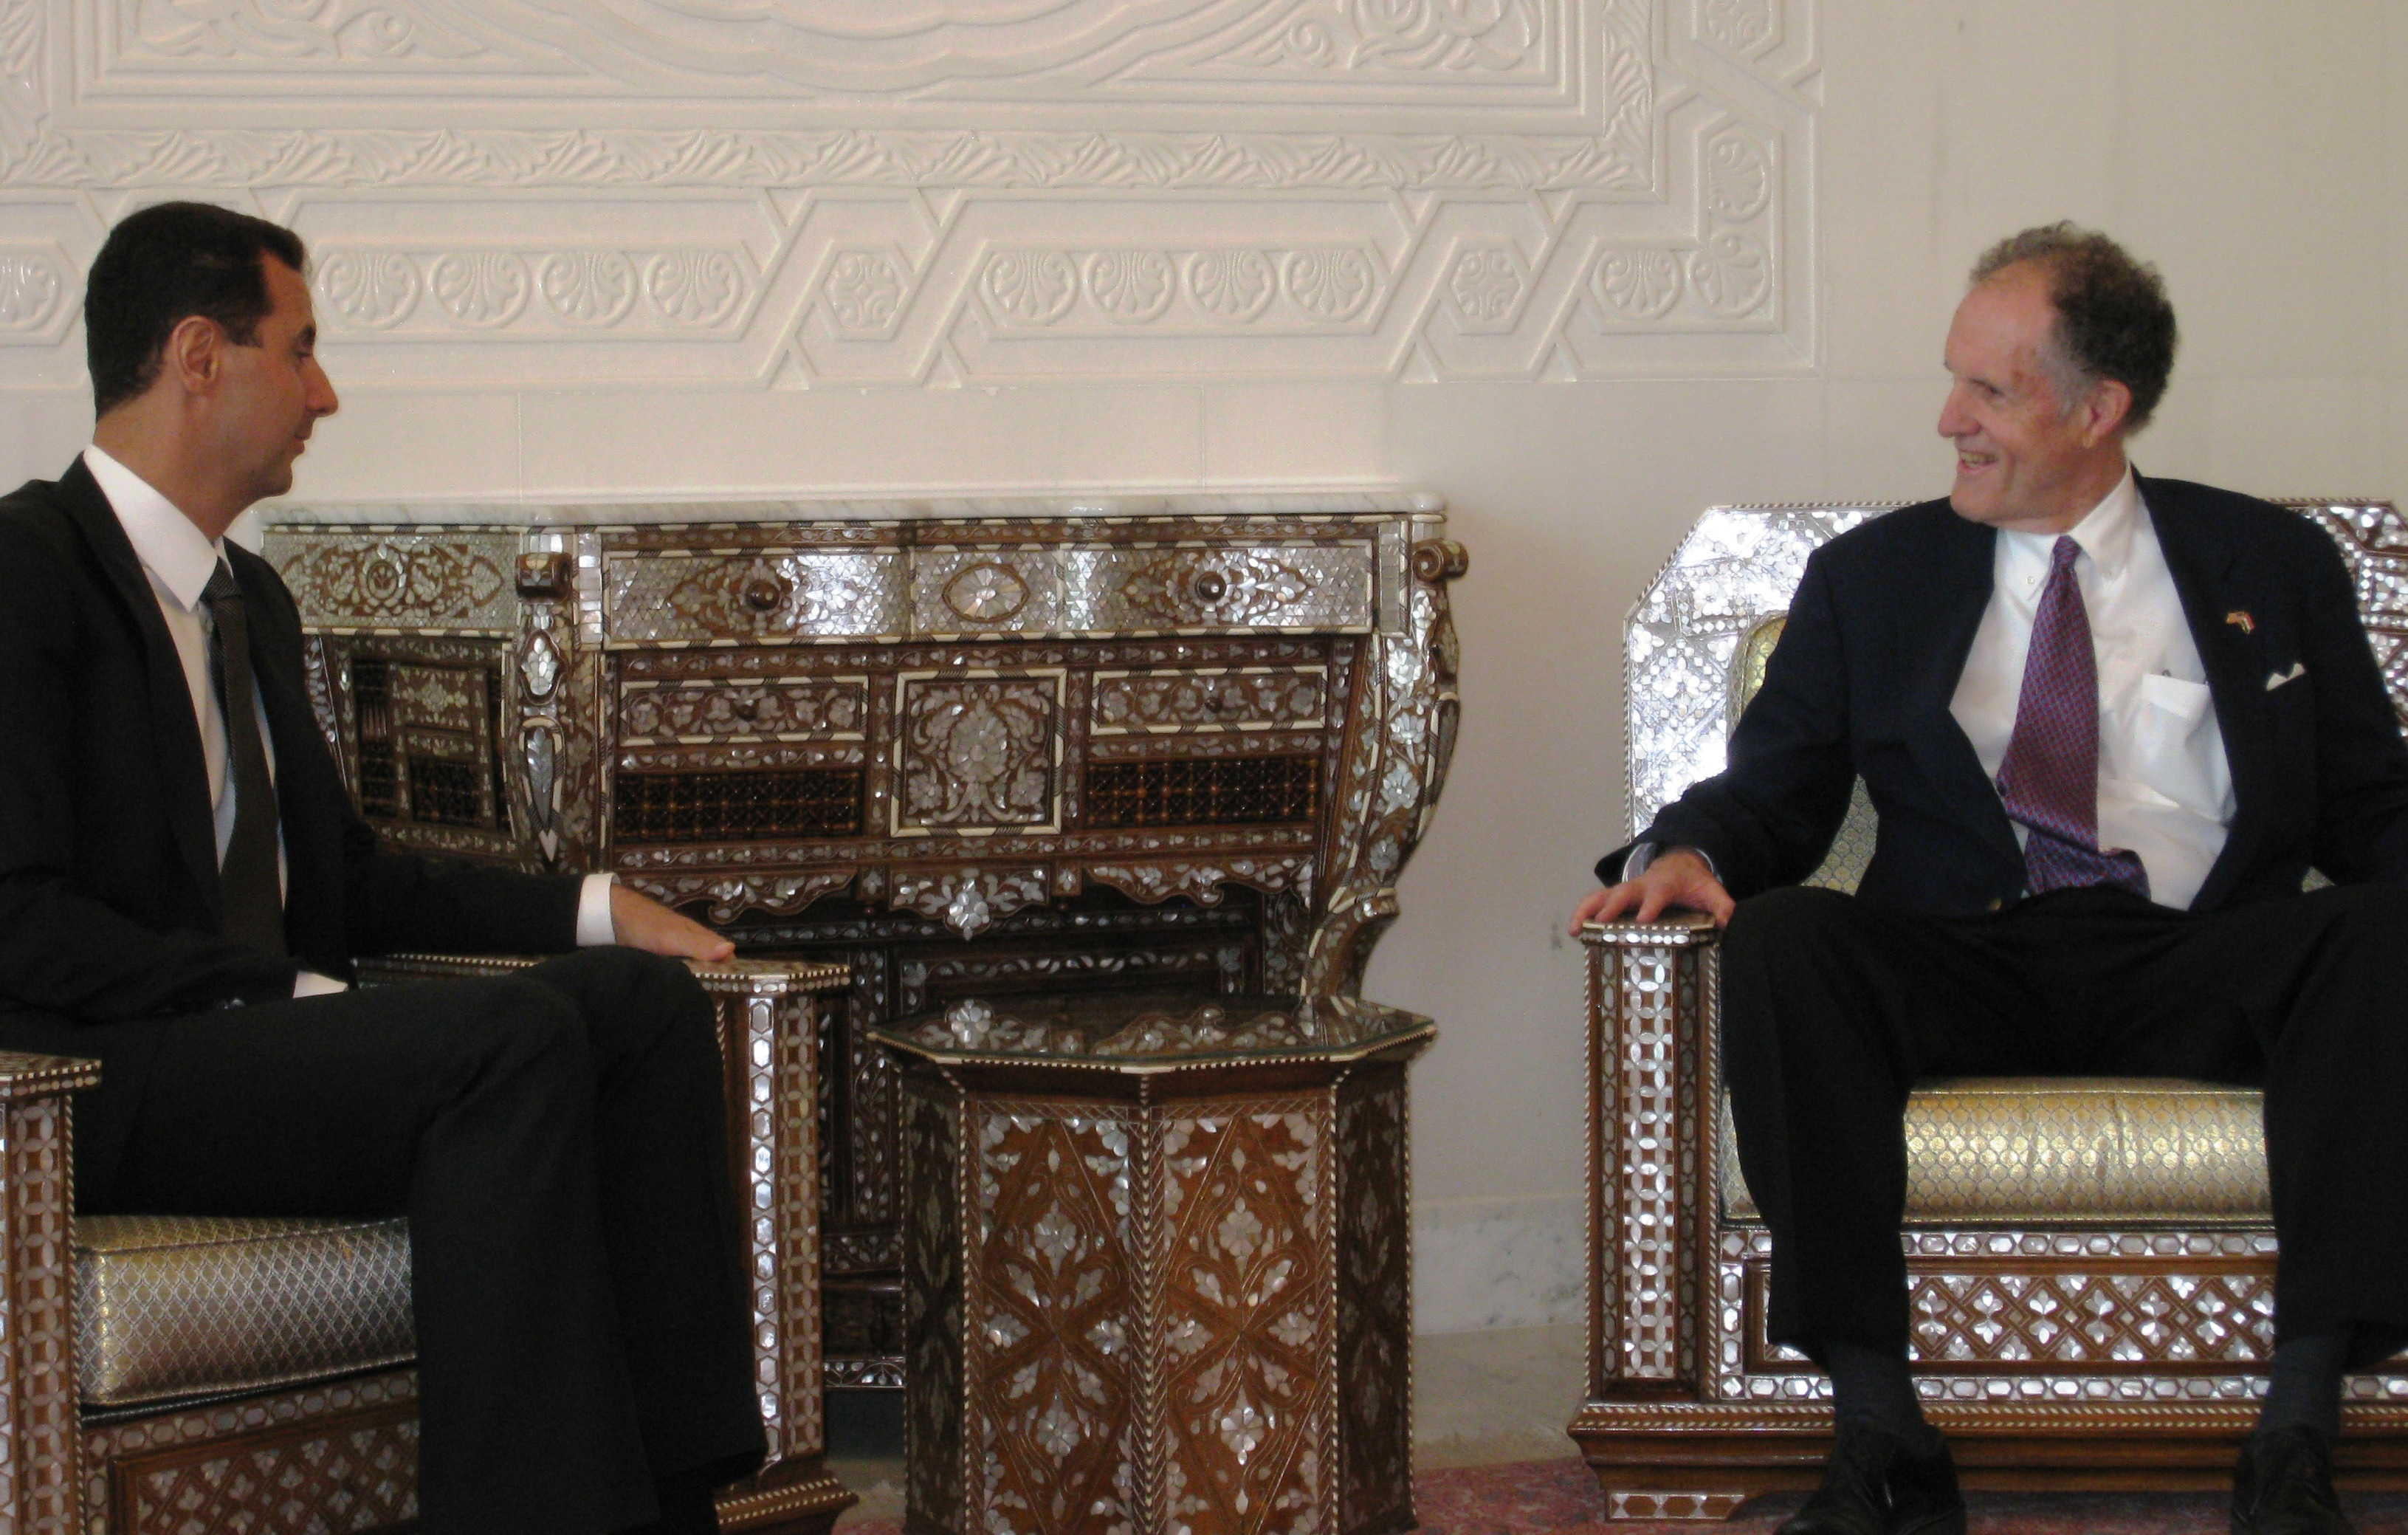 Photograph with Syrian President Bashar Al-Assad, 2009 May